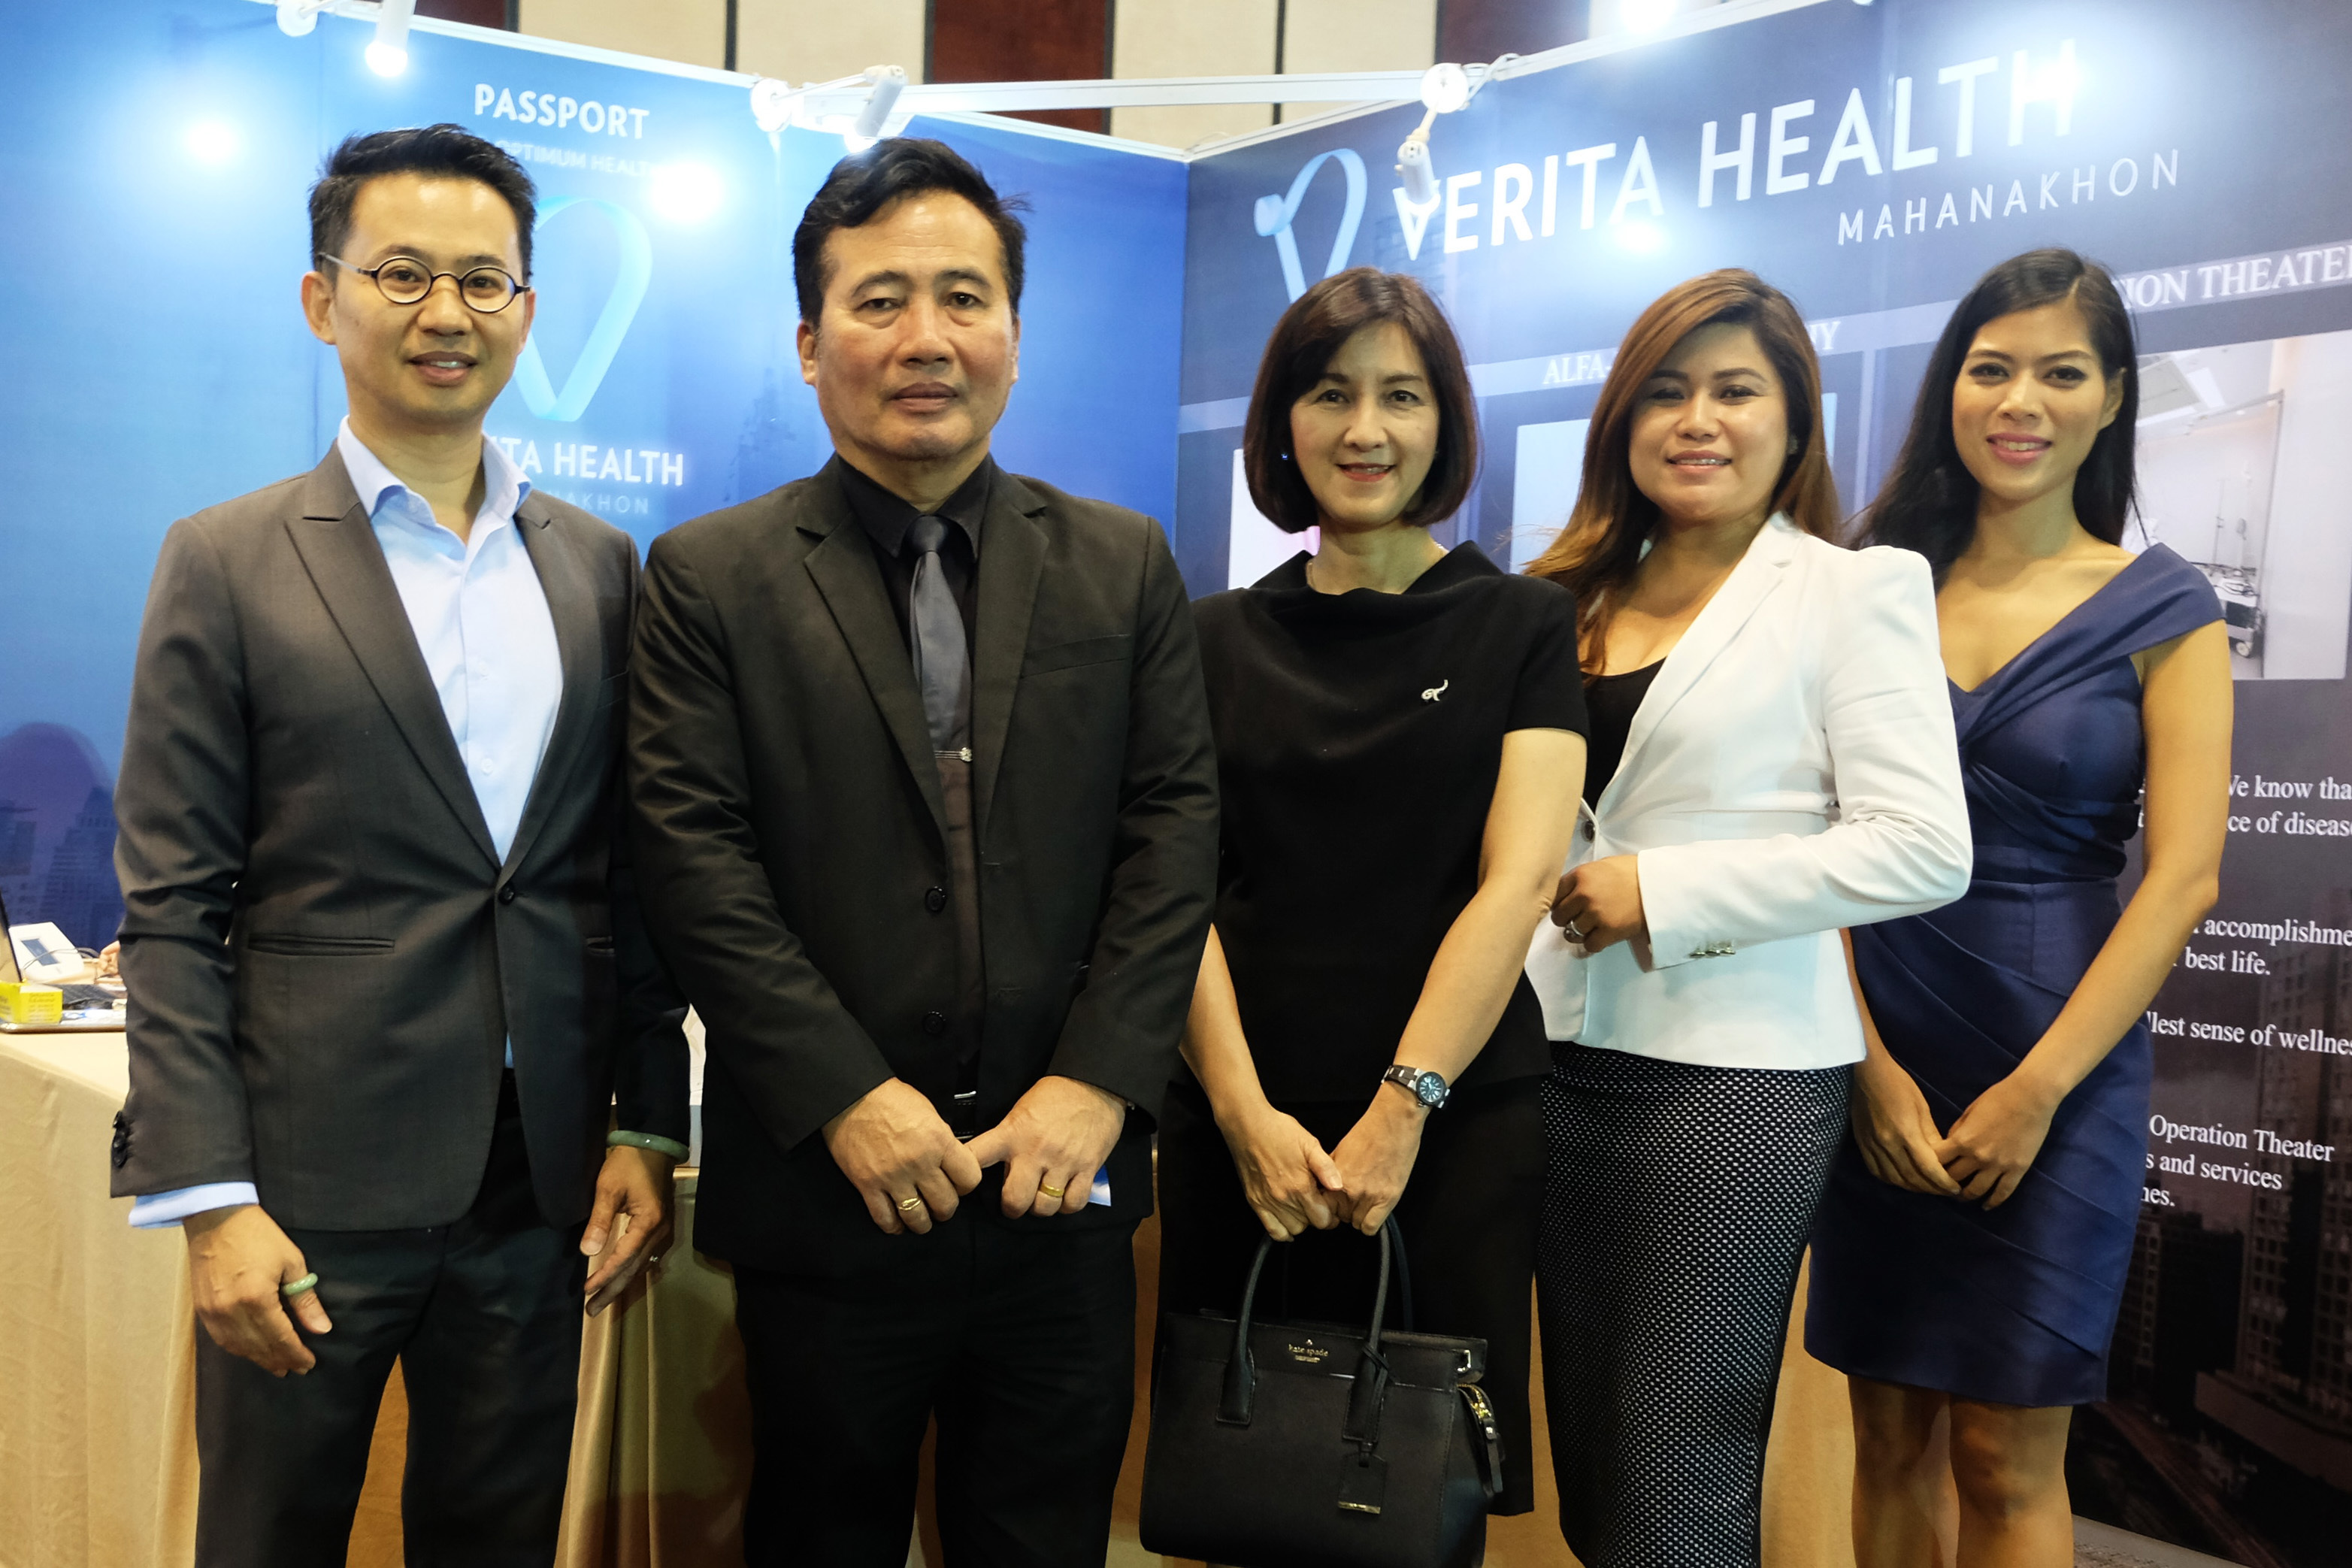 Verita Health MahaNakorn joined TAT's Event